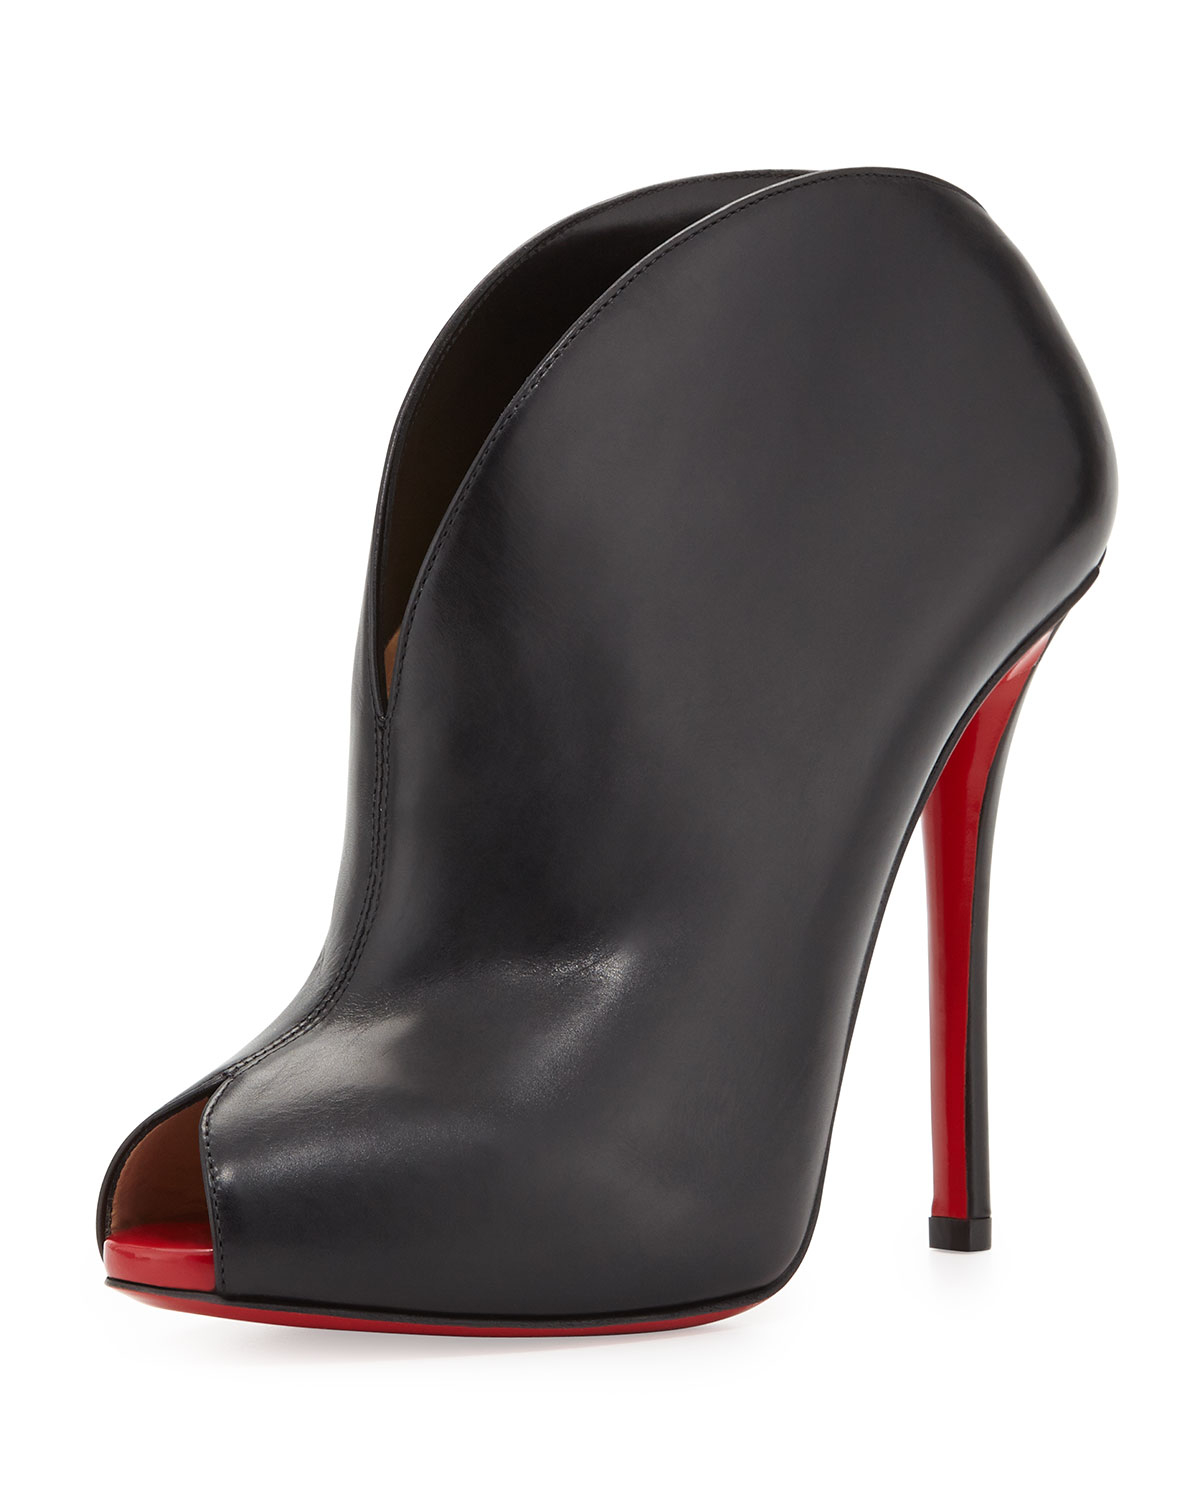 reputable site e82d8 23b8e Christian Louboutin Black Chester Fille Peep-Toe Red Sole Bootie